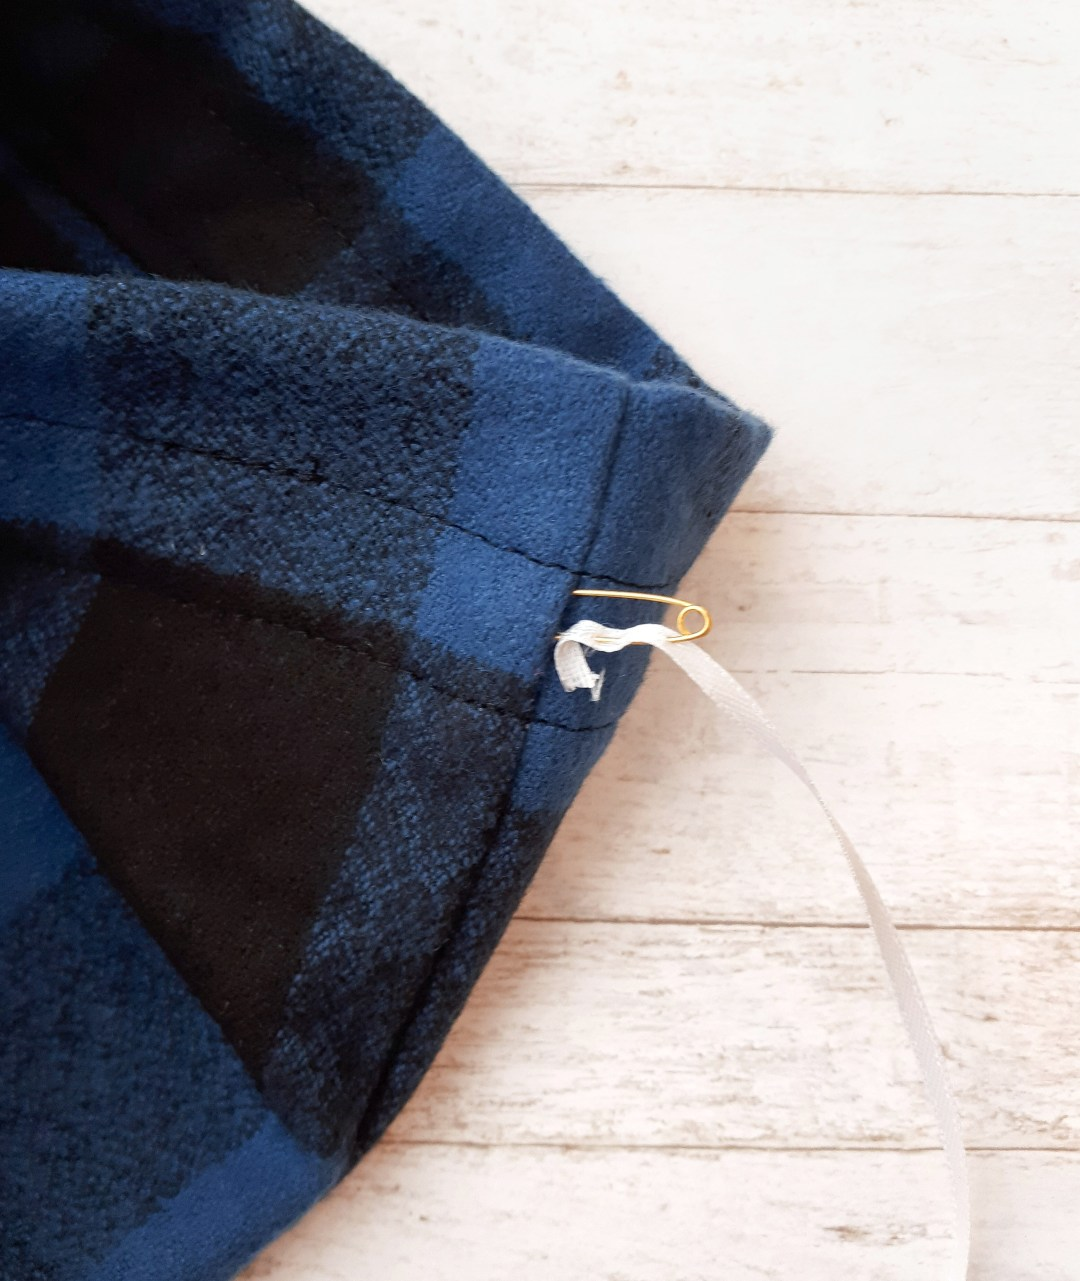 Use a safety pin to thread the ribbon through the casing